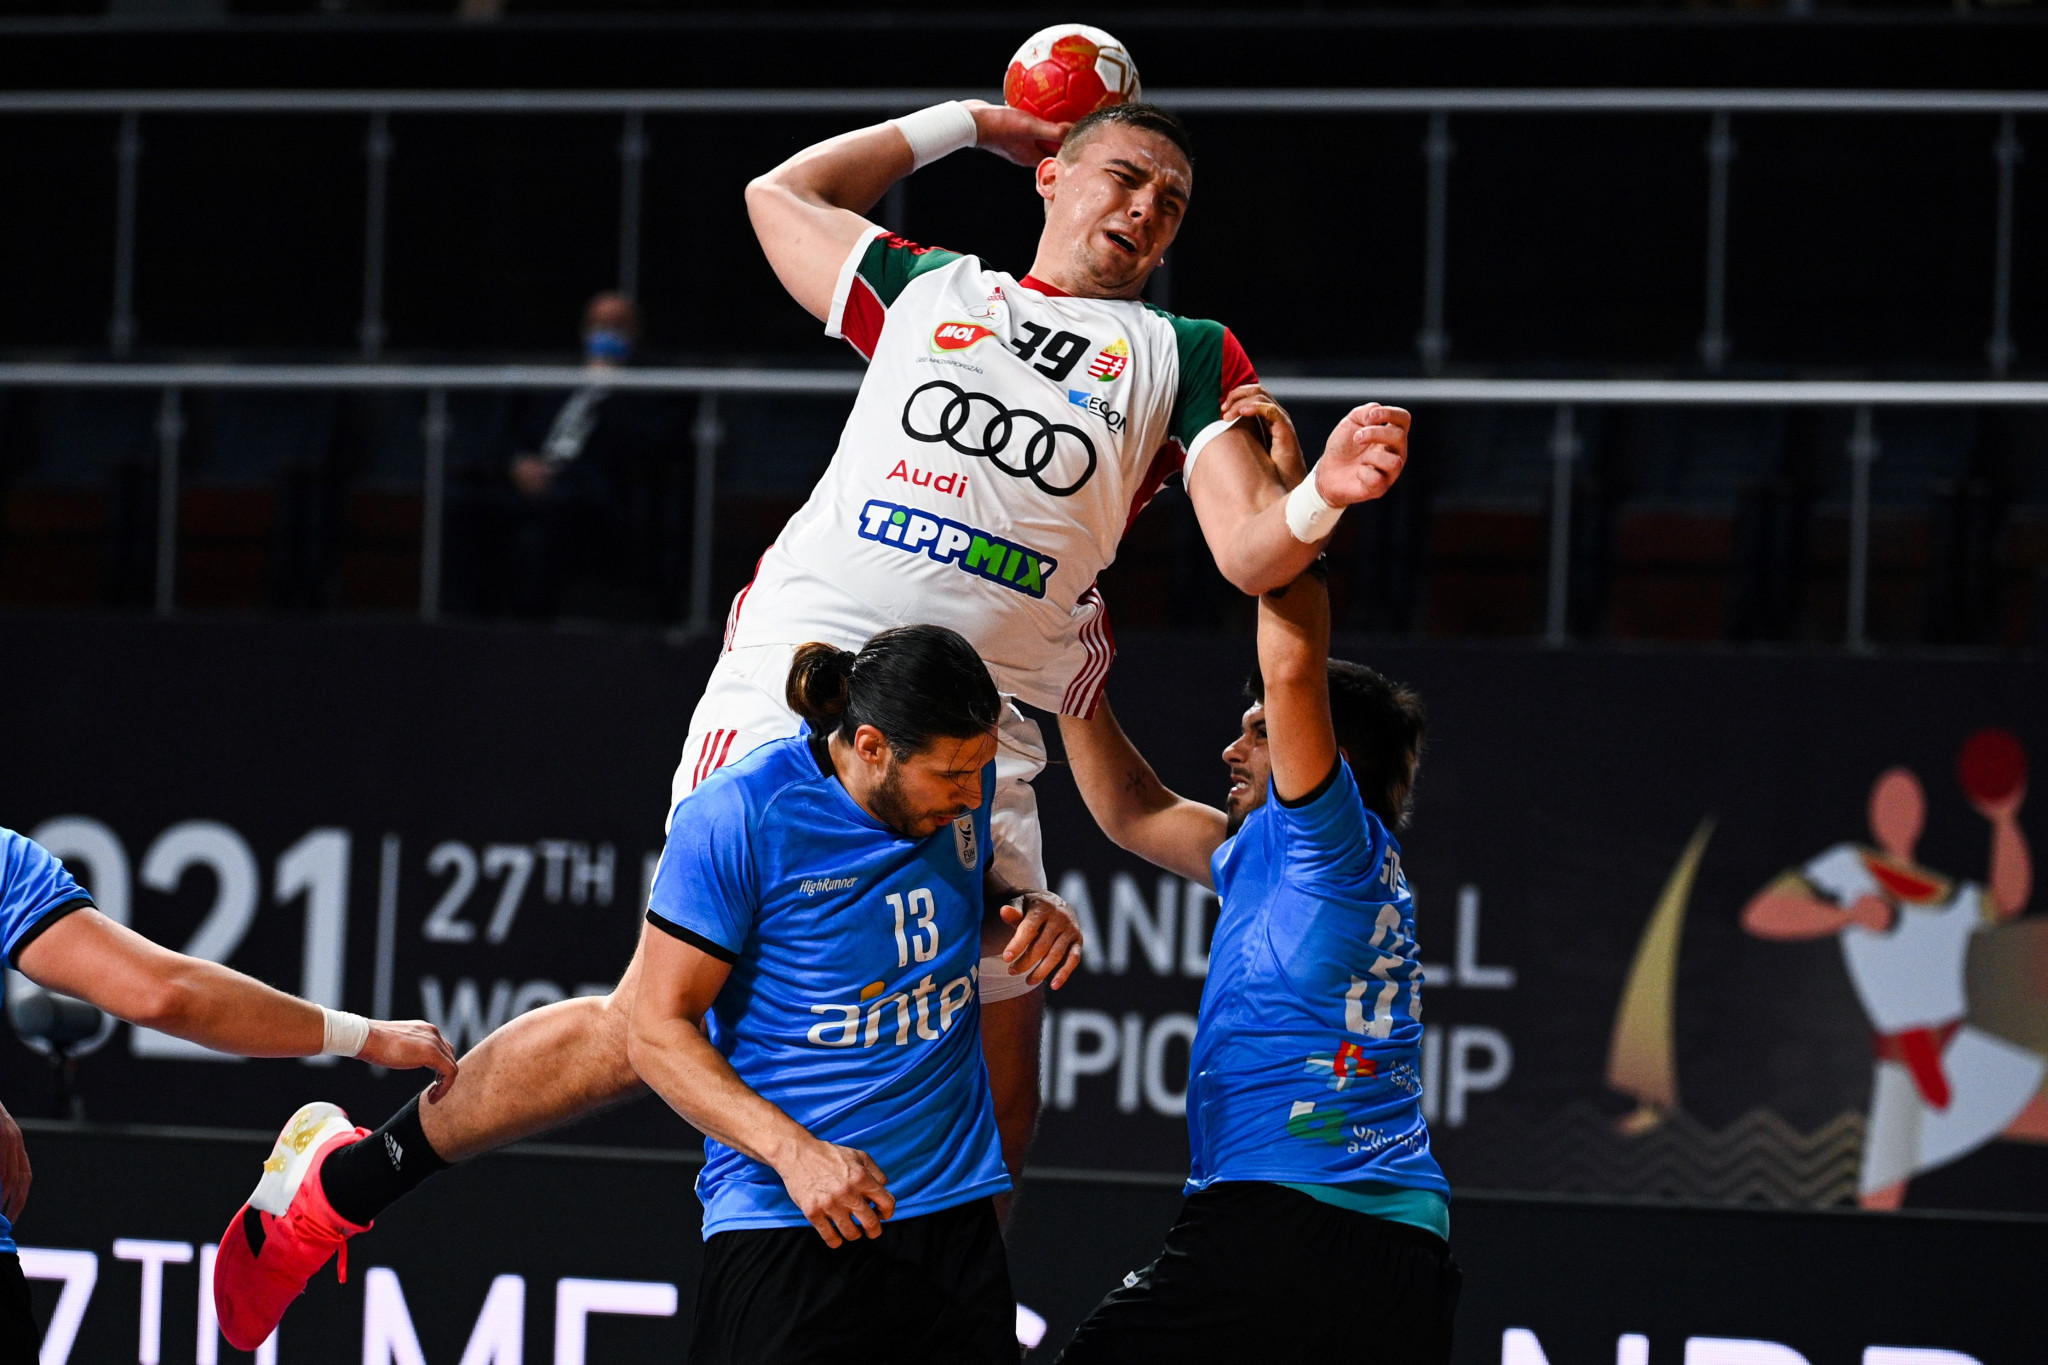 Hungary reached the main round of the IHF Men's Handball World Championship after a comfortable win over Uruguay ©Getty Images